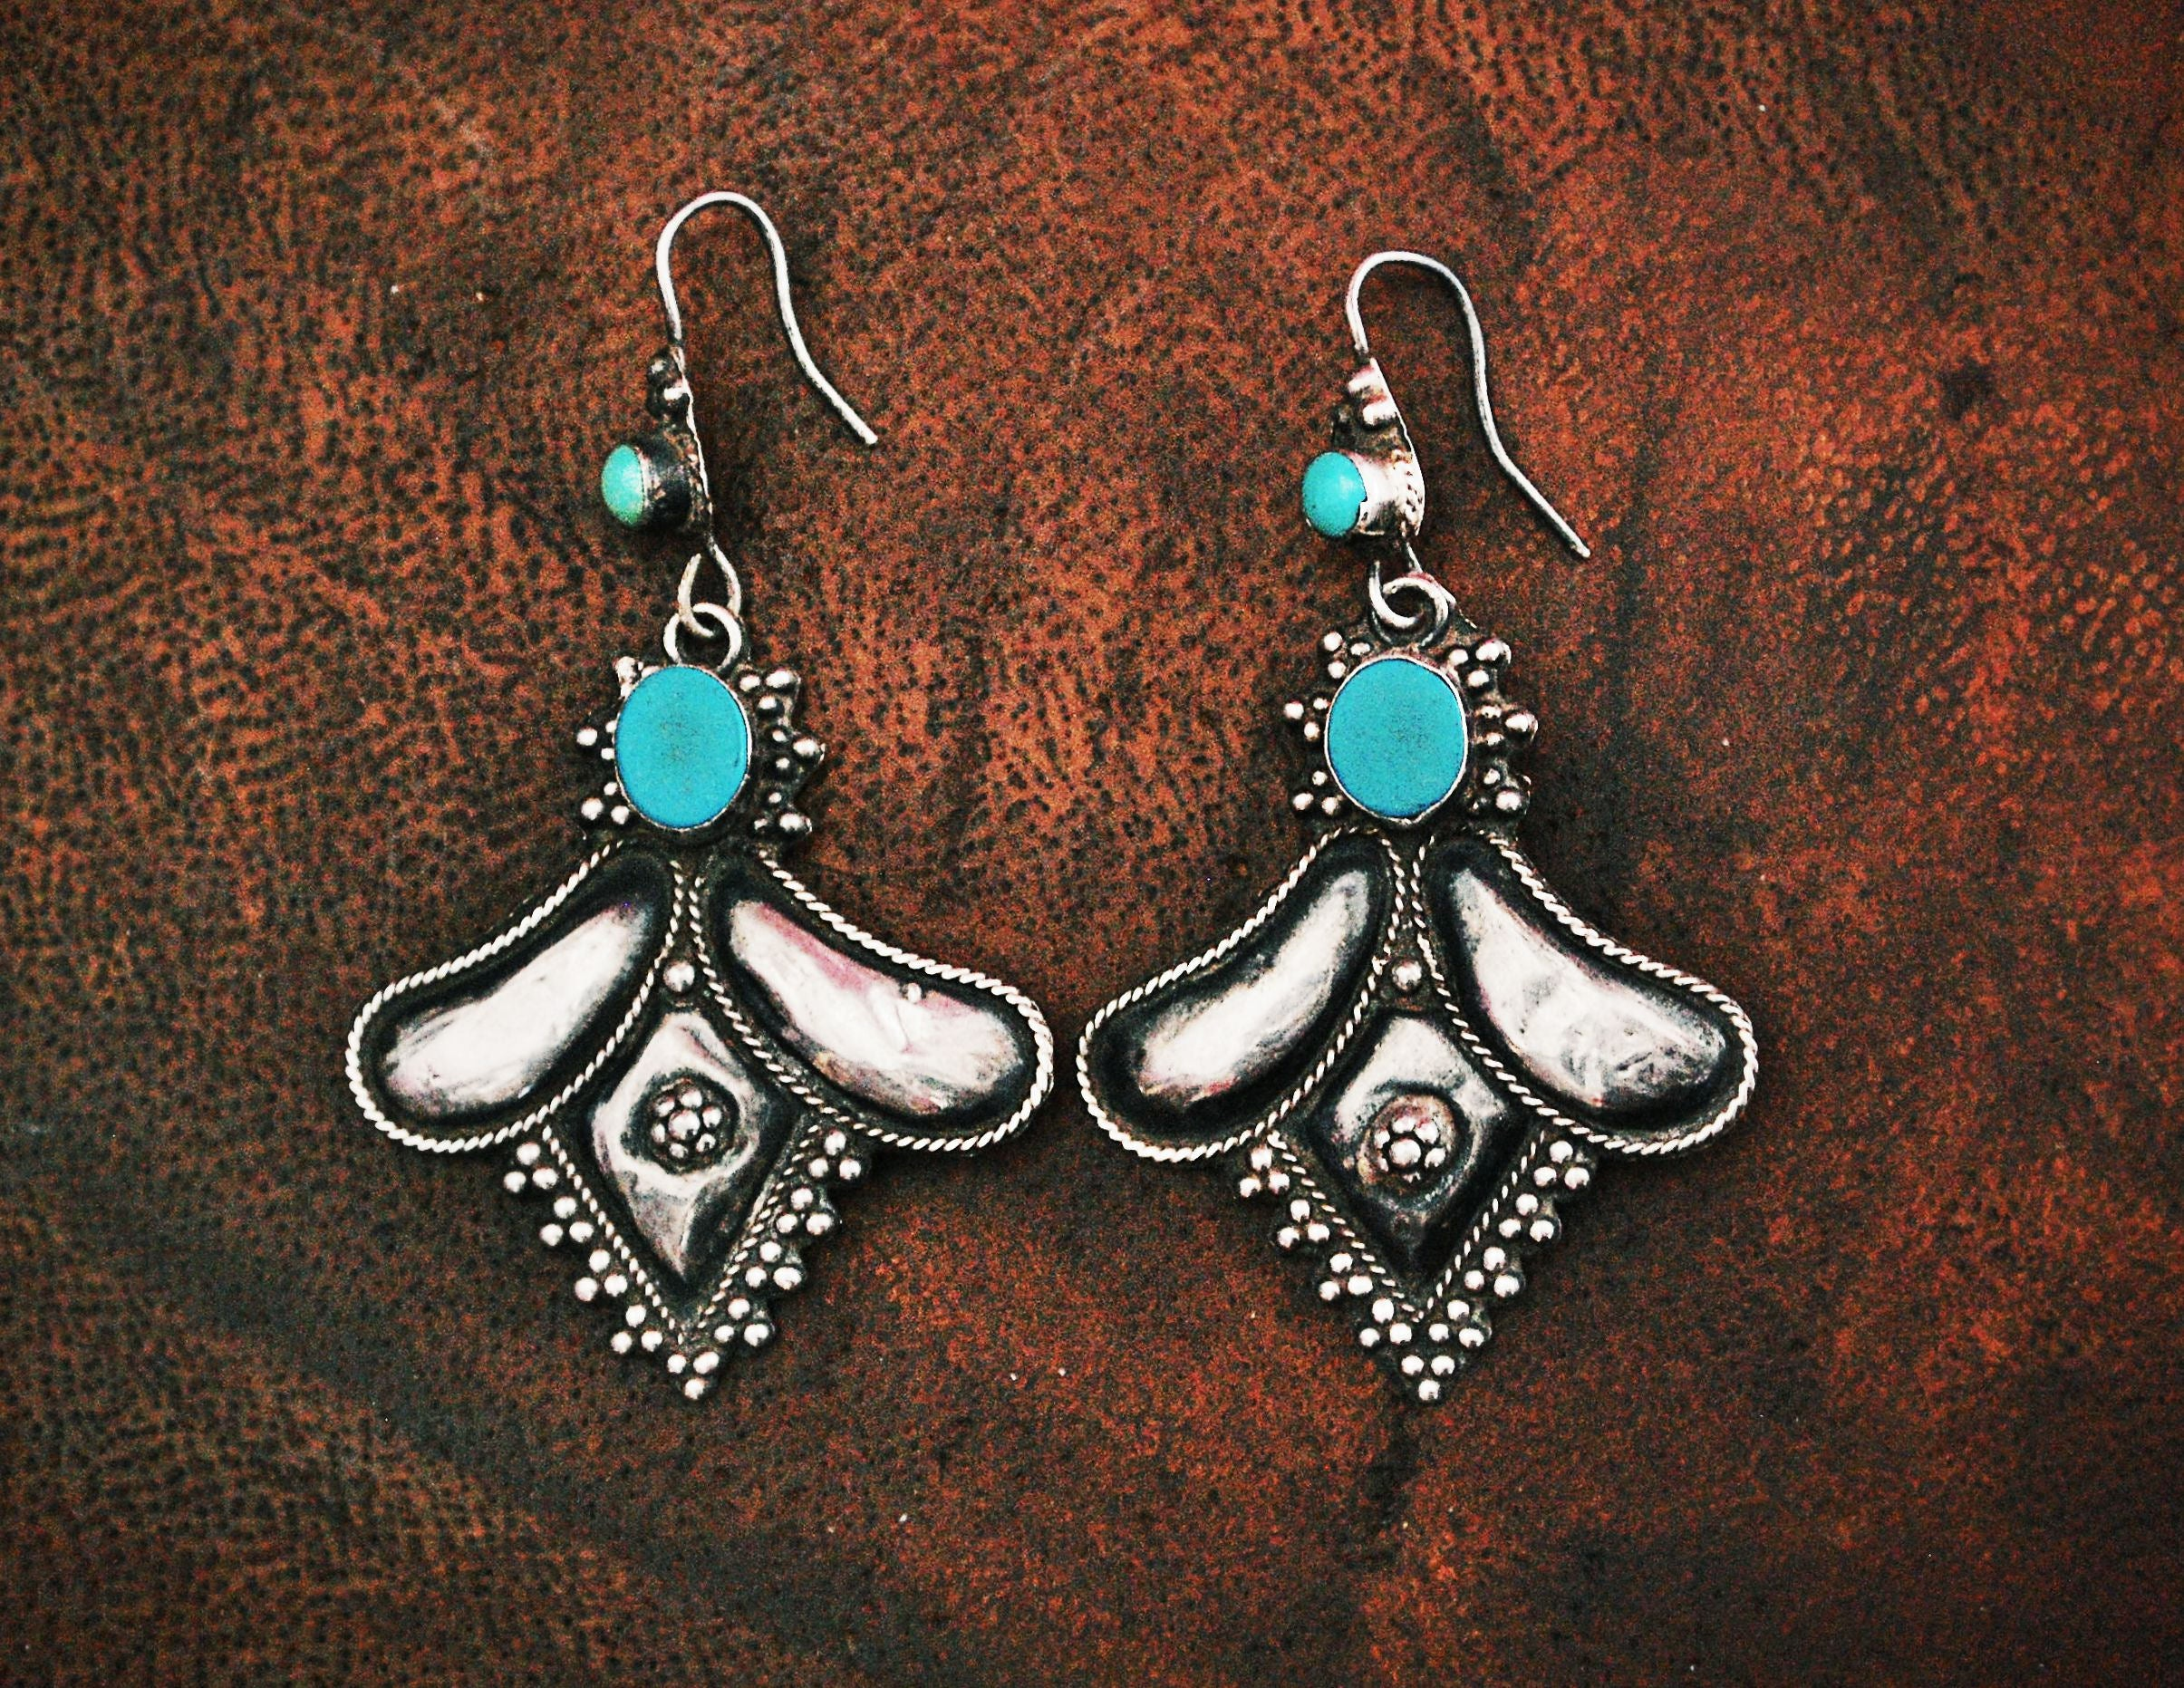 Rajasthani Silver Turquoise Earrings - Rajasthan Silver Earrings - Rajasthan Silver Jewelry - Rajasthani Earrings - Indian Jewelry